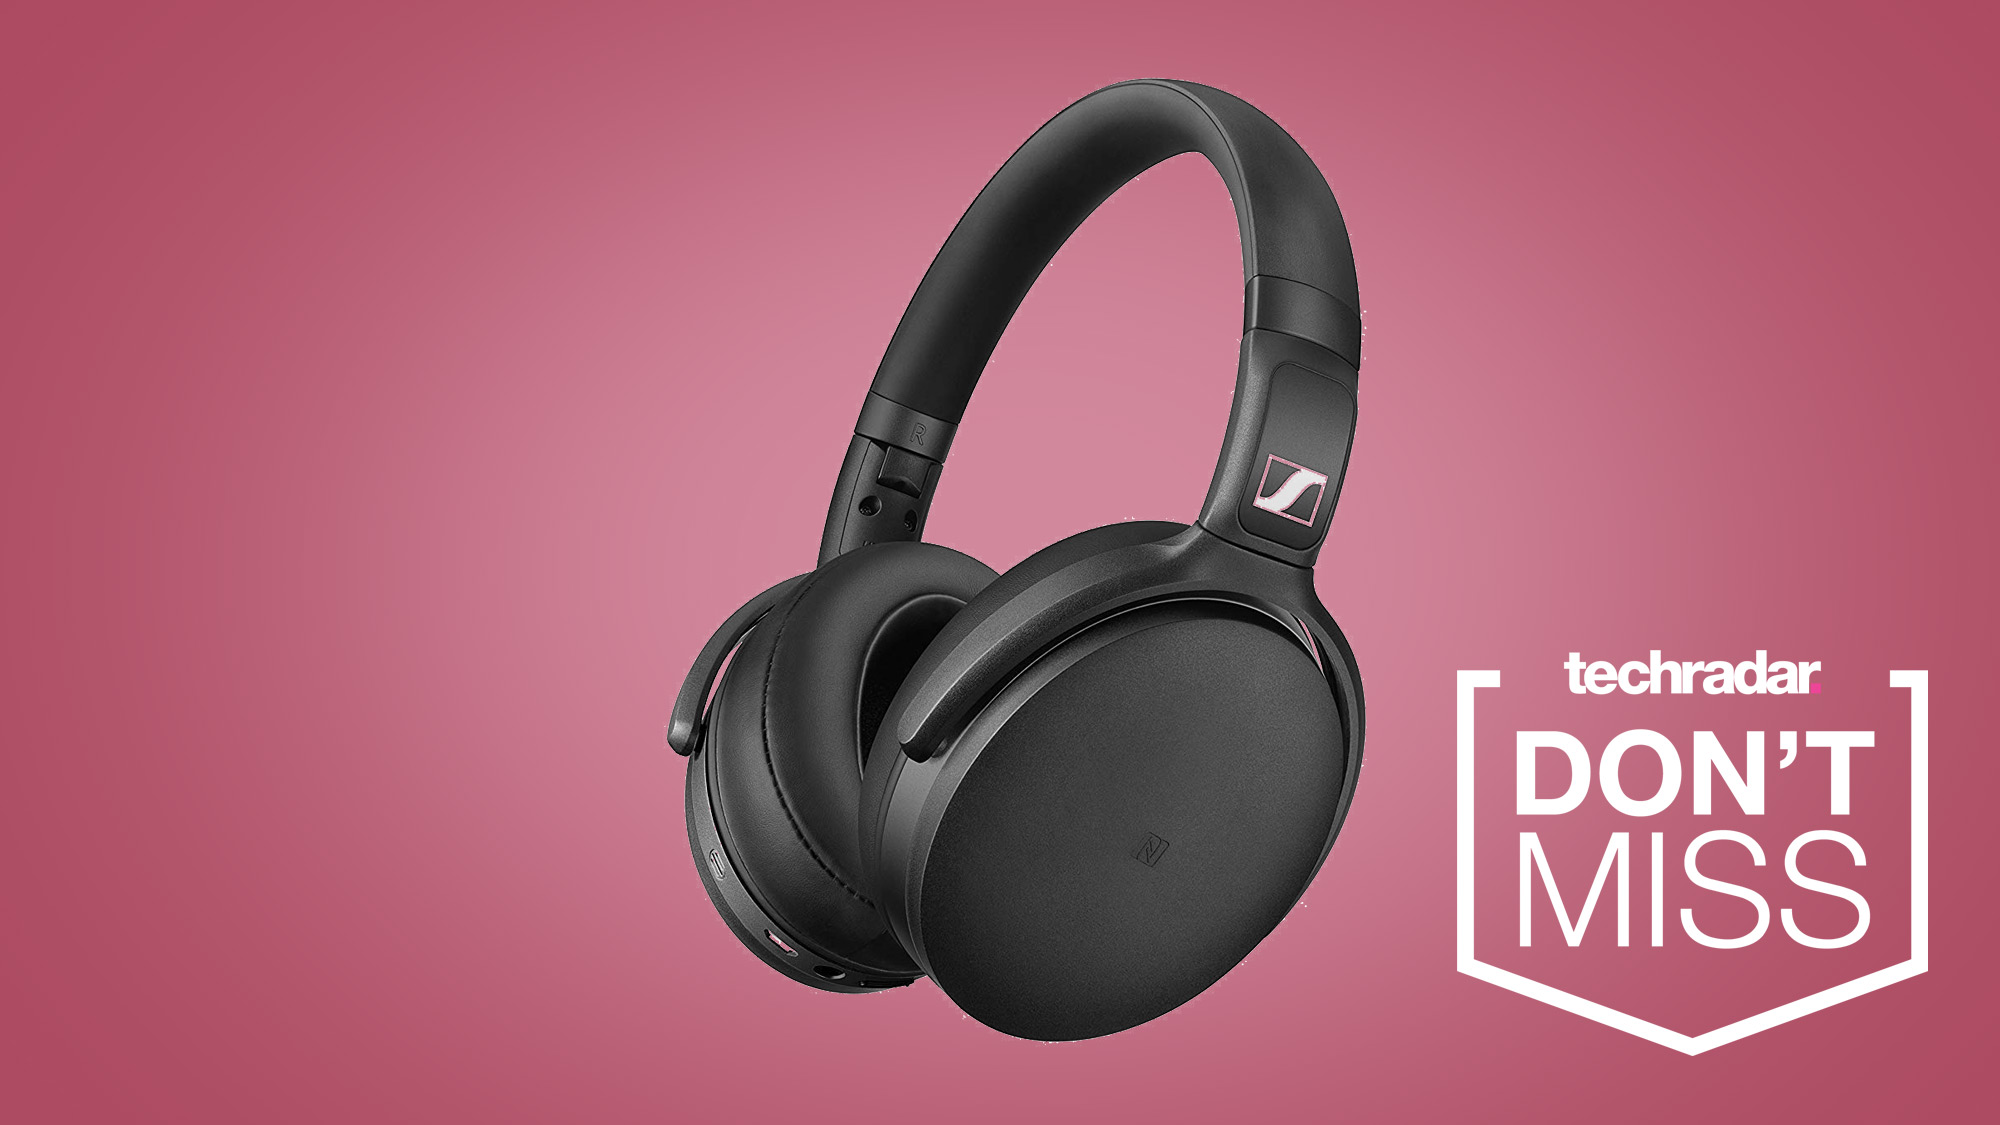 This Boxing Day headphone sale knocks half the price off top-end Sennheiser cans